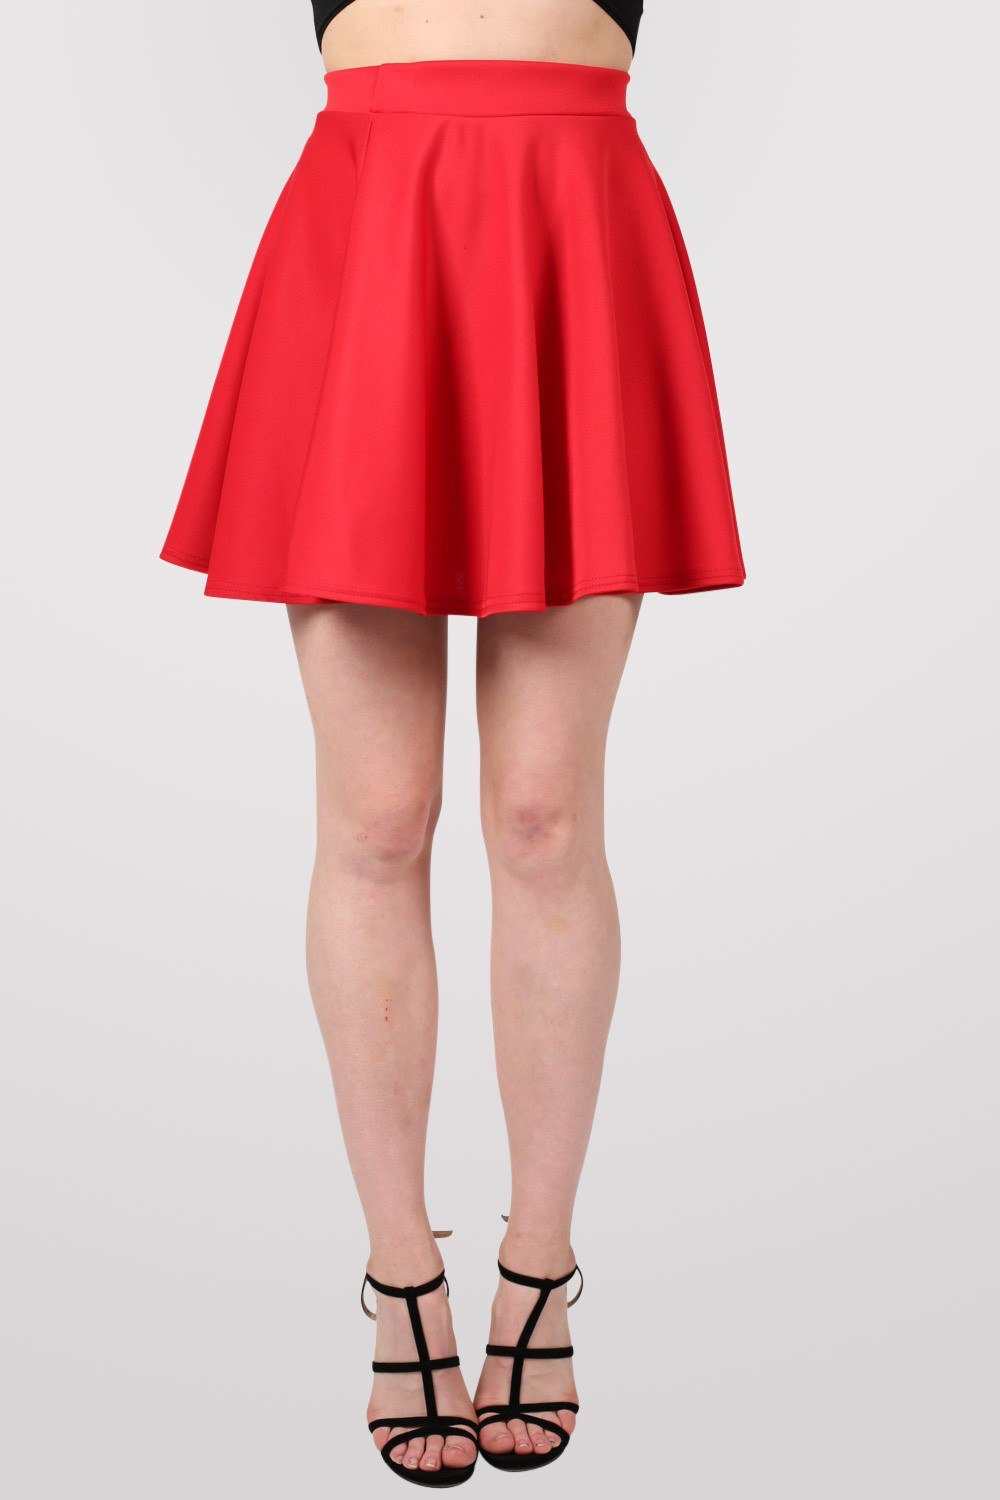 ad50a0171aecfd RED-SKATER-SKIRT-FRONT – Crossdressing Tales